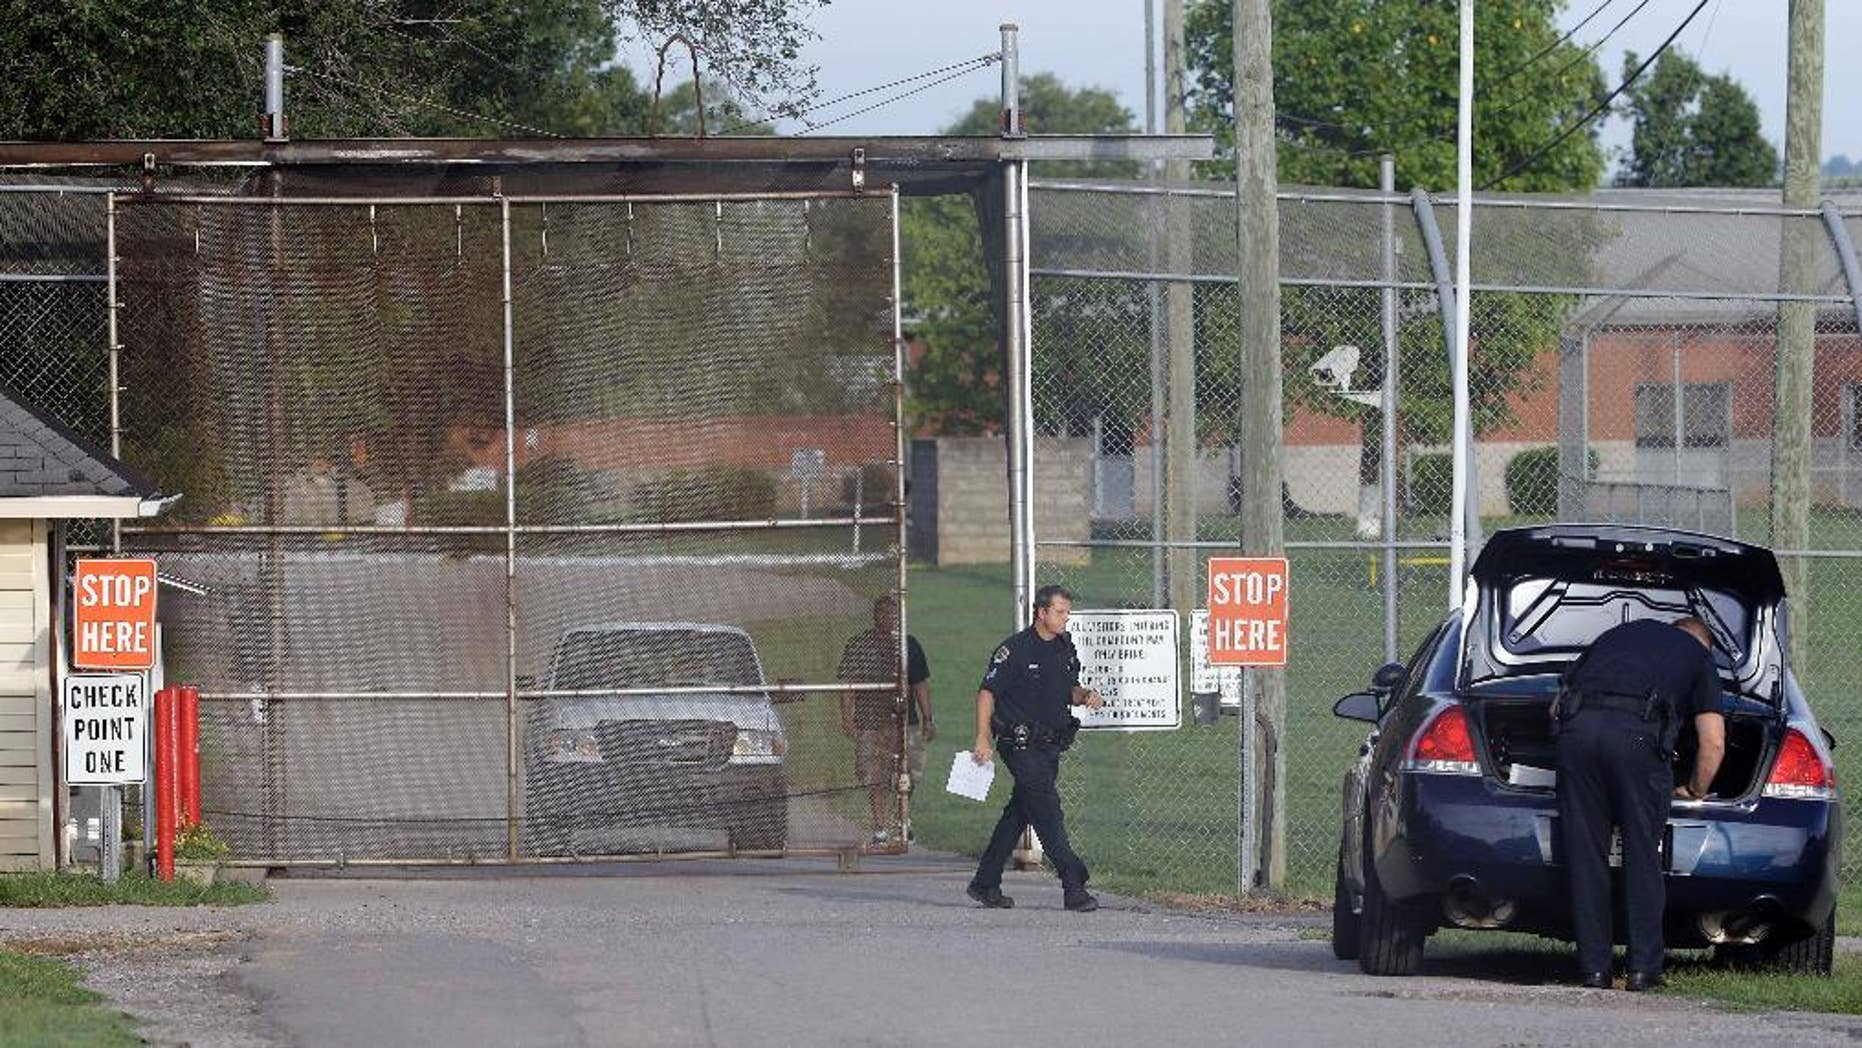 FILE - In this Sept. 2, 2014 file photo, police work in front of the Woodland Hills Youth Development Center in Nashville, Tenn.  Thirteen teenagers escaped overnight from the youth detention center in Nashville but all but one were recaptured within hours, authorities said Saturday, Sept. 27, 2014, marking the latest of a rash of security breaches involving the Woodland Hills Youth Development Center.  (AP Photo/Mark Humphrey)